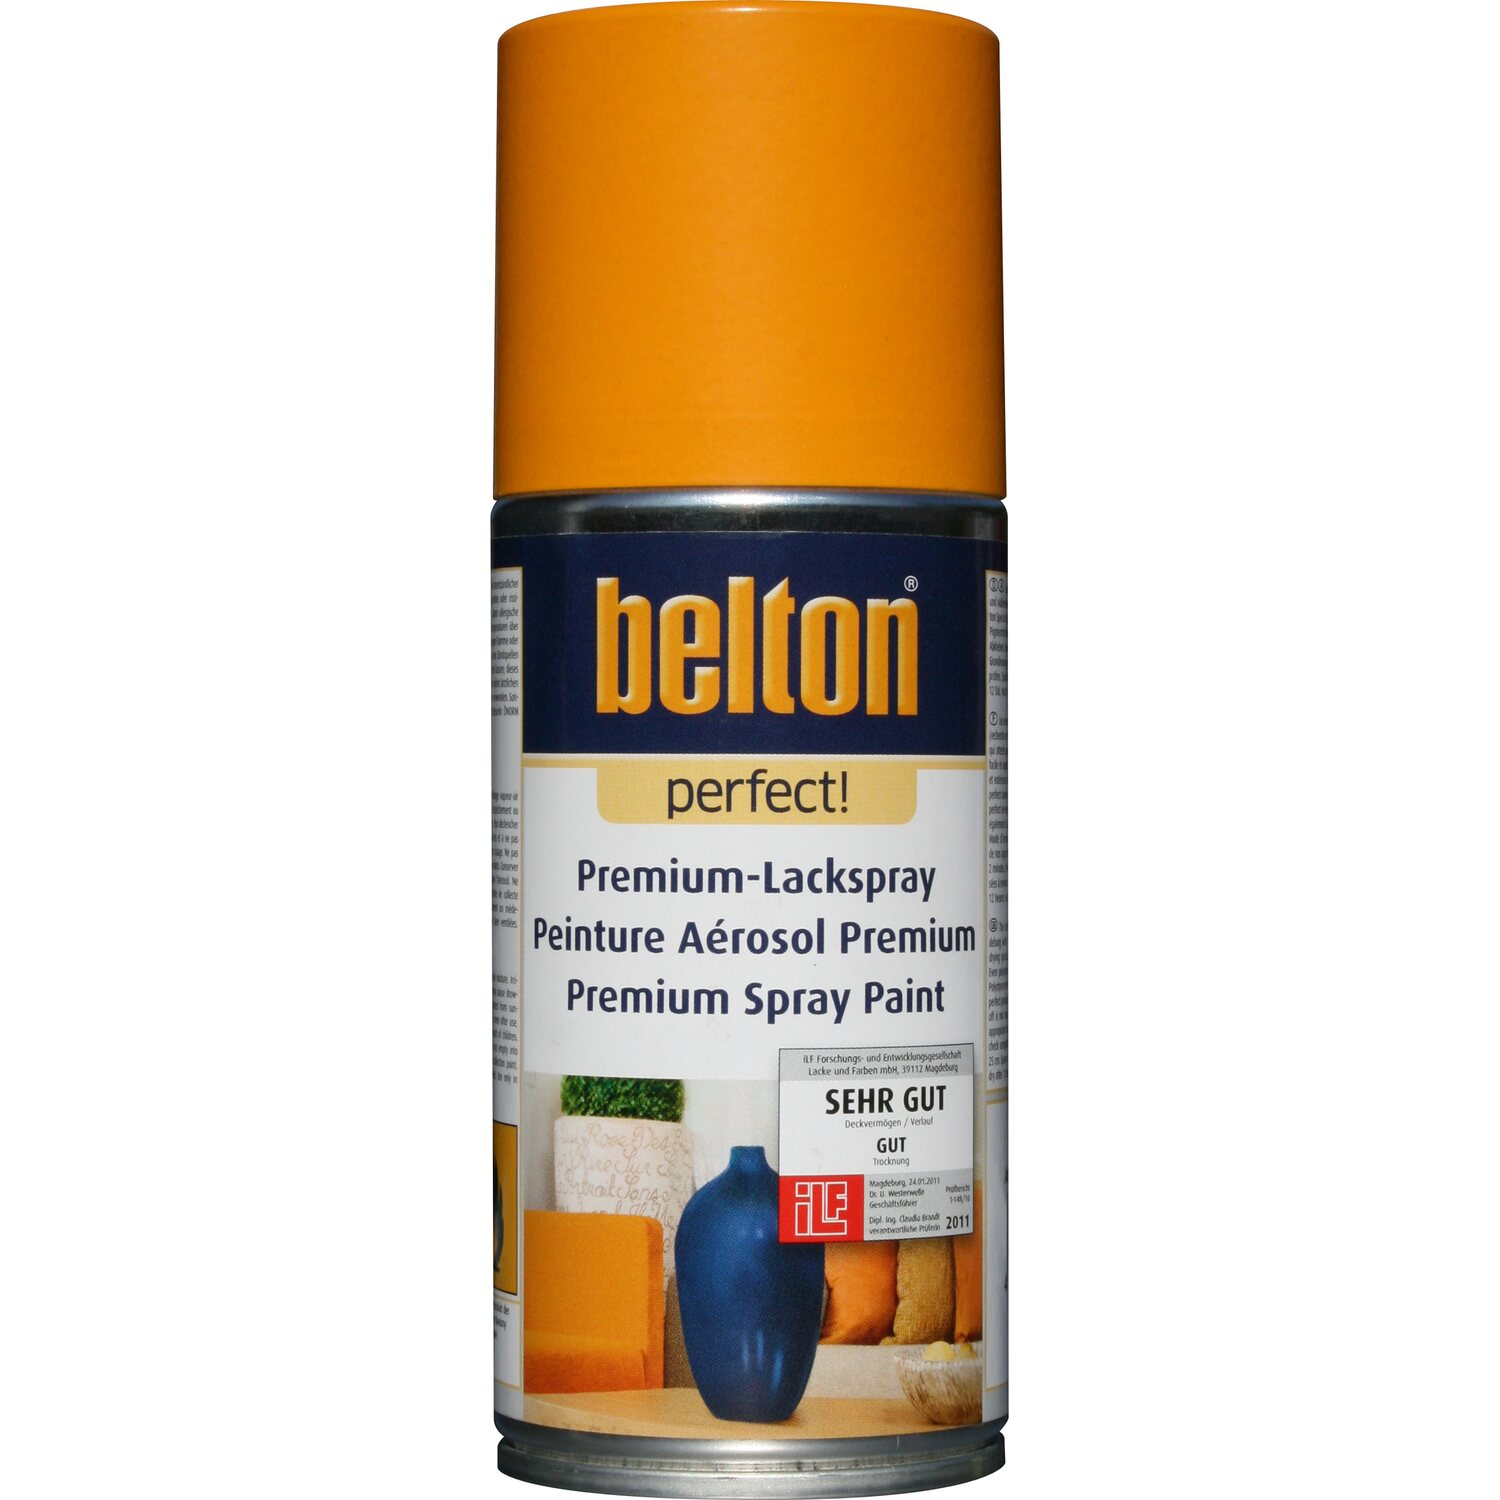 Belton Perfect Premium-Lackspray Orange seidenmatt 150 ml